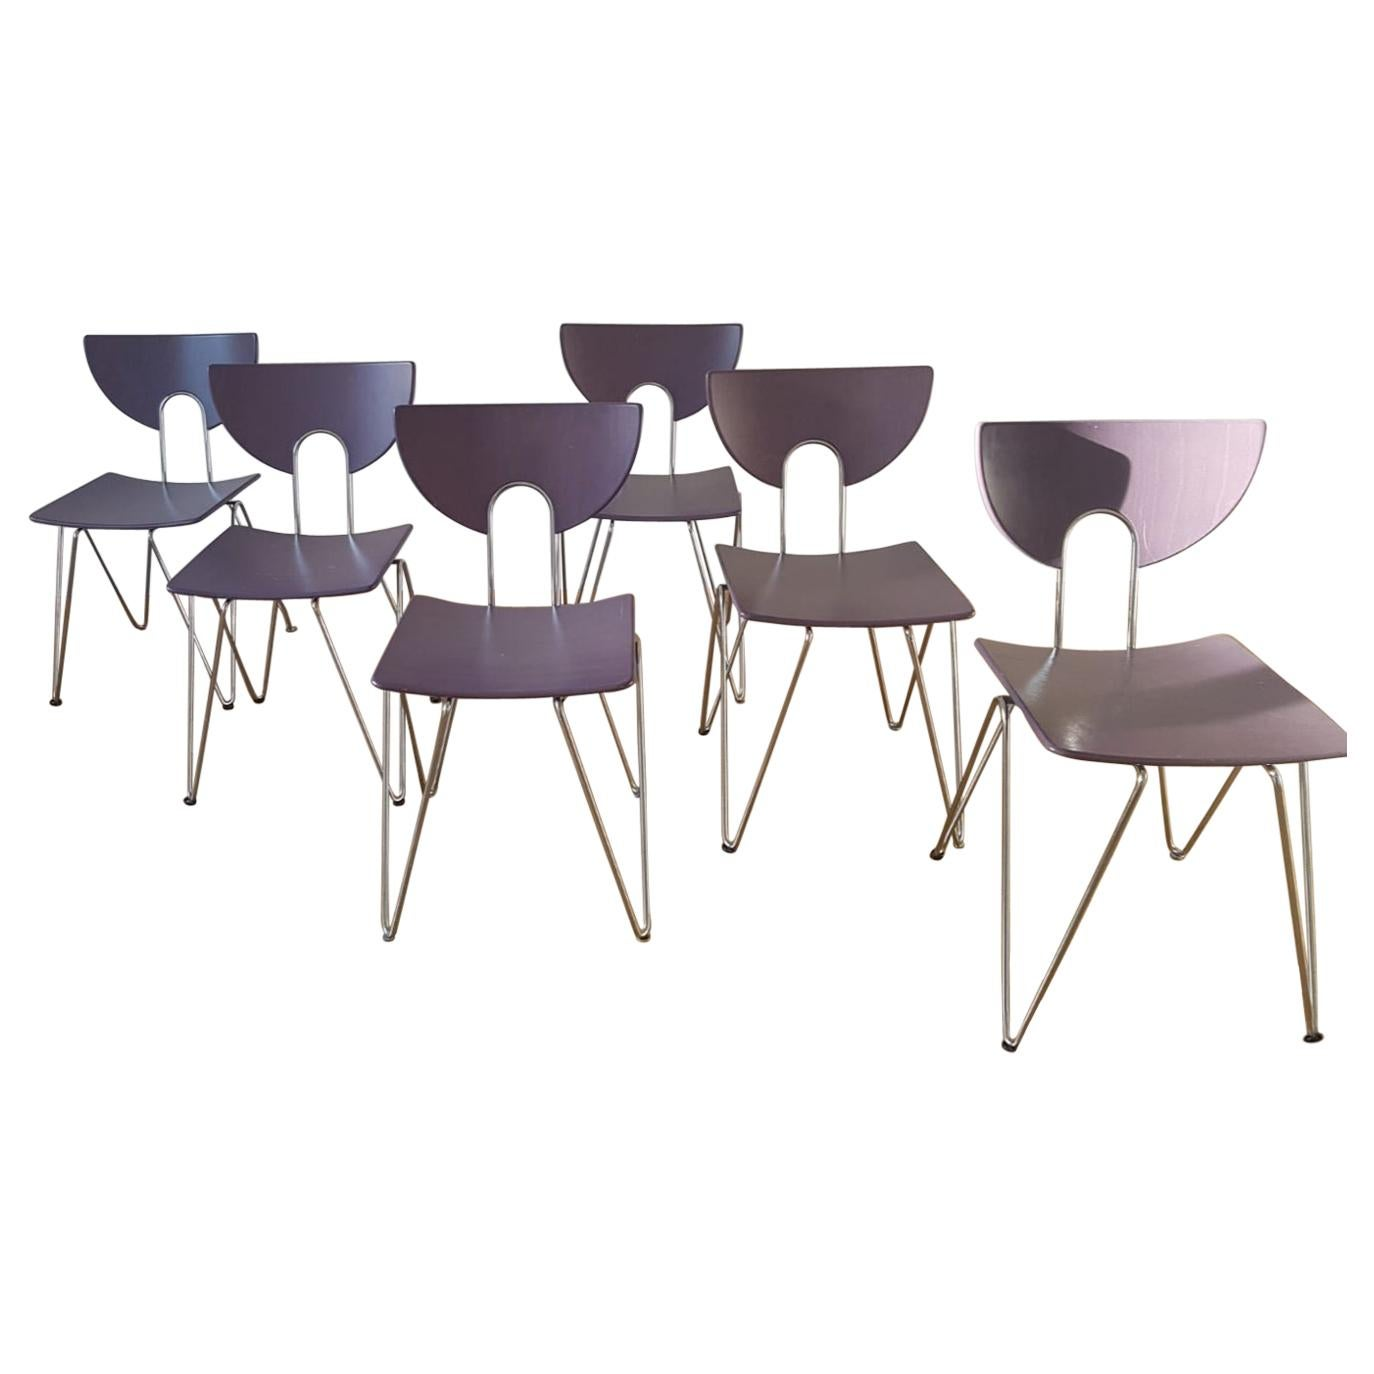 Set of Six Mikado 1800 Chairs designed by Walter Leeman for Kusch+Co, 1970s